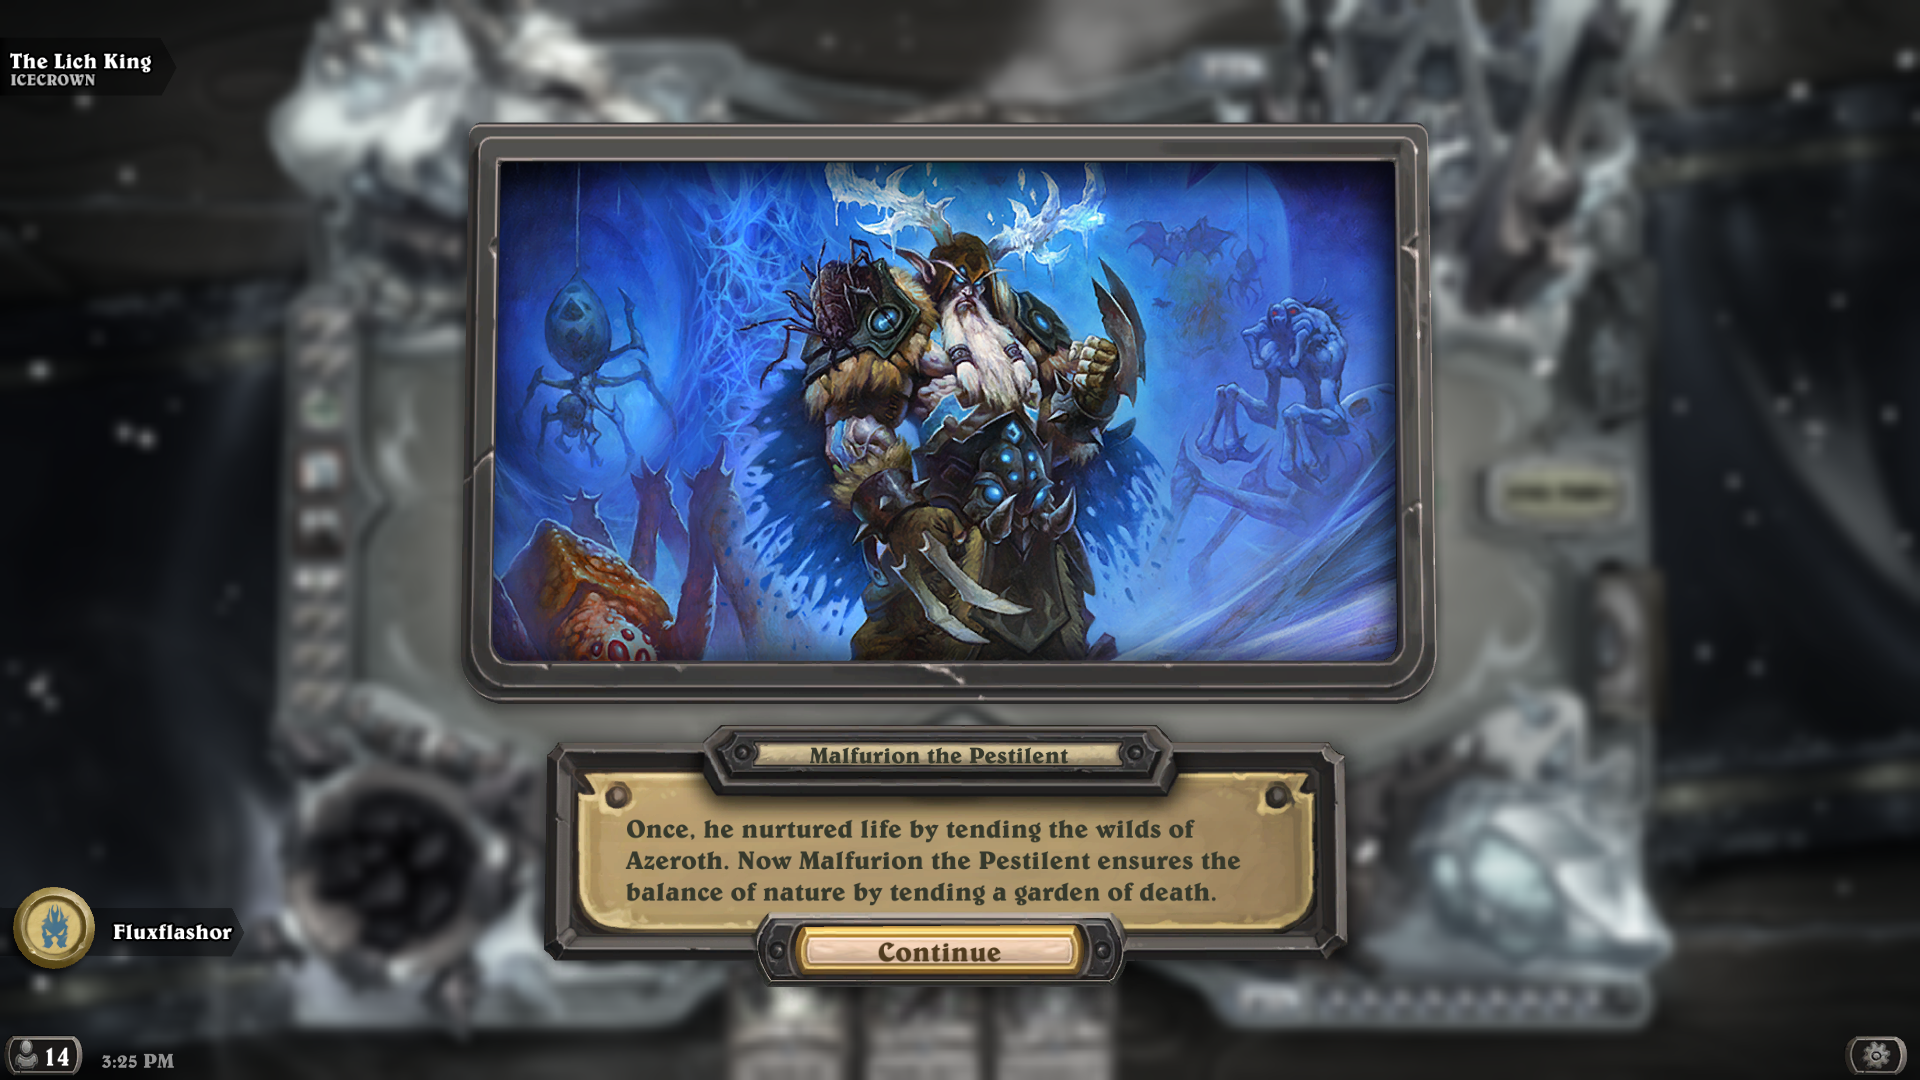 The Lich King Boss Guide - The Frozen Throne - Frozen Throne